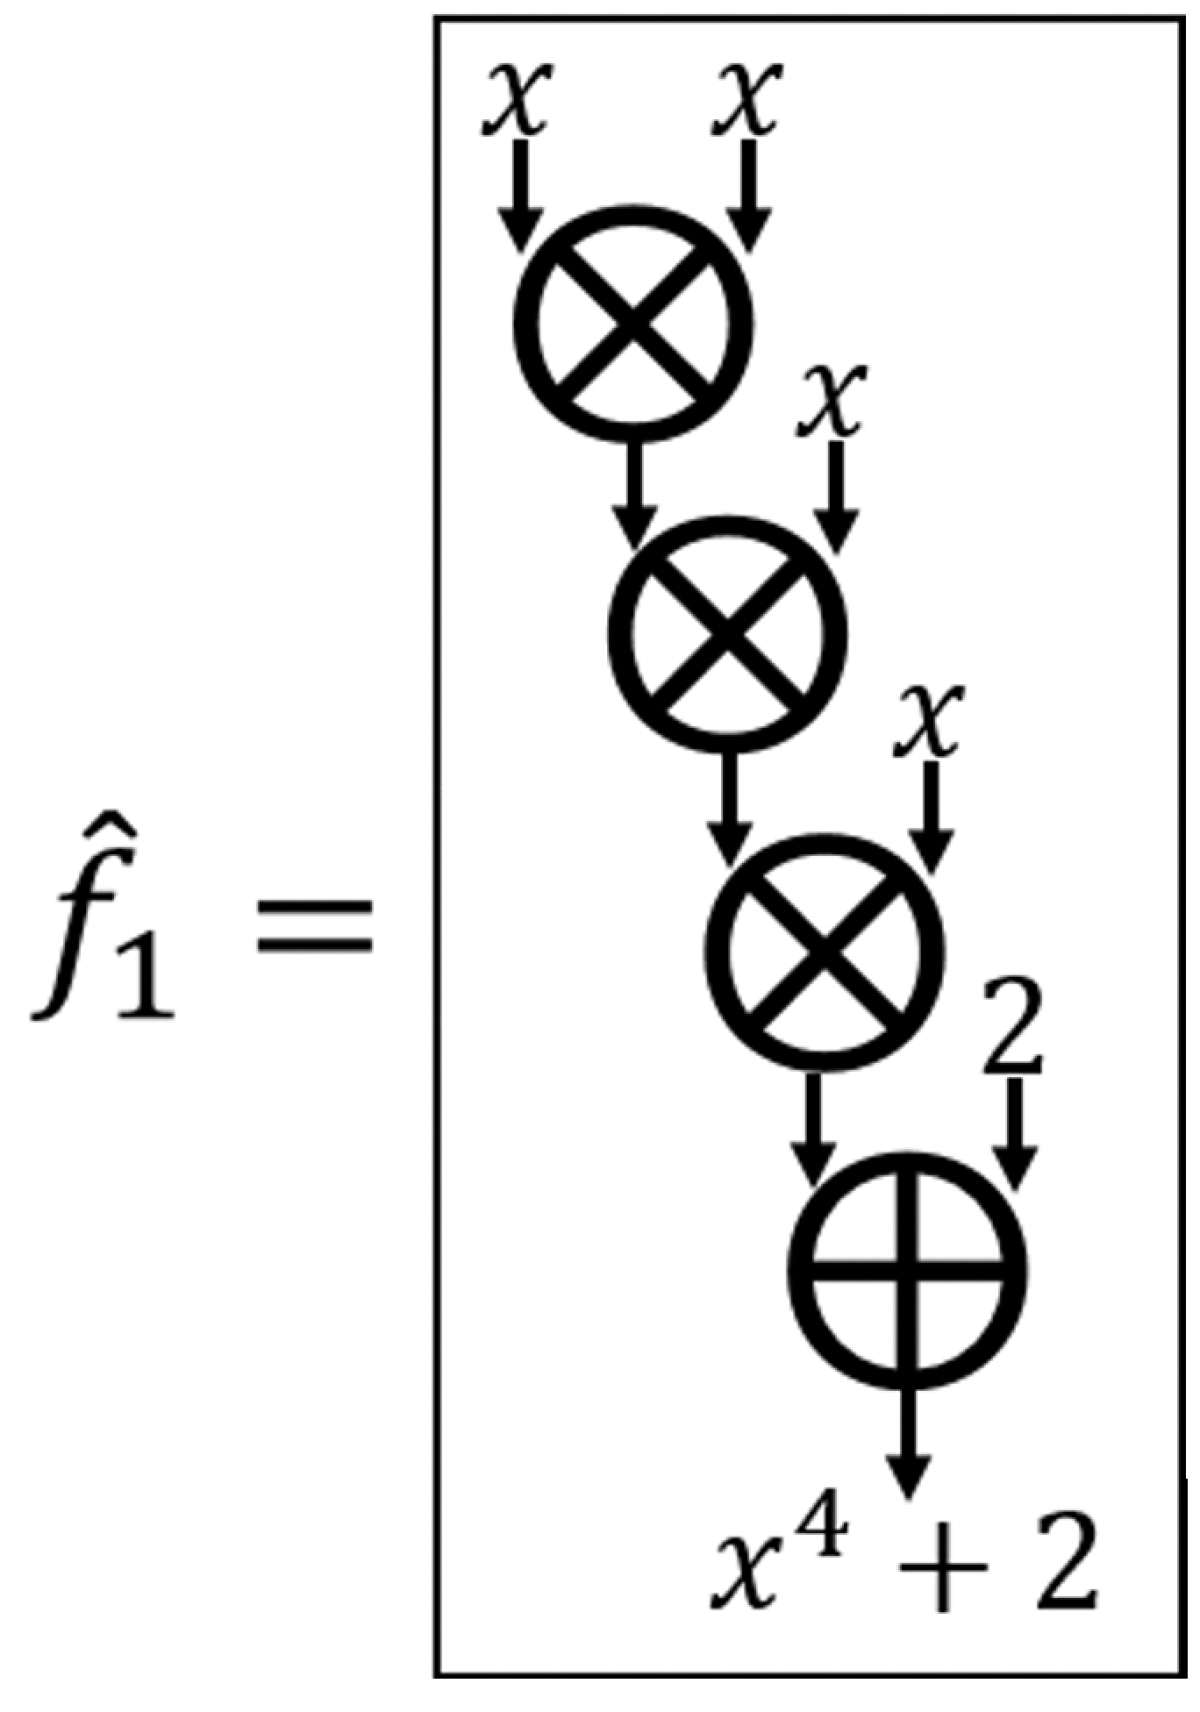 Diagram of a circuit with a multiplicative depth of three